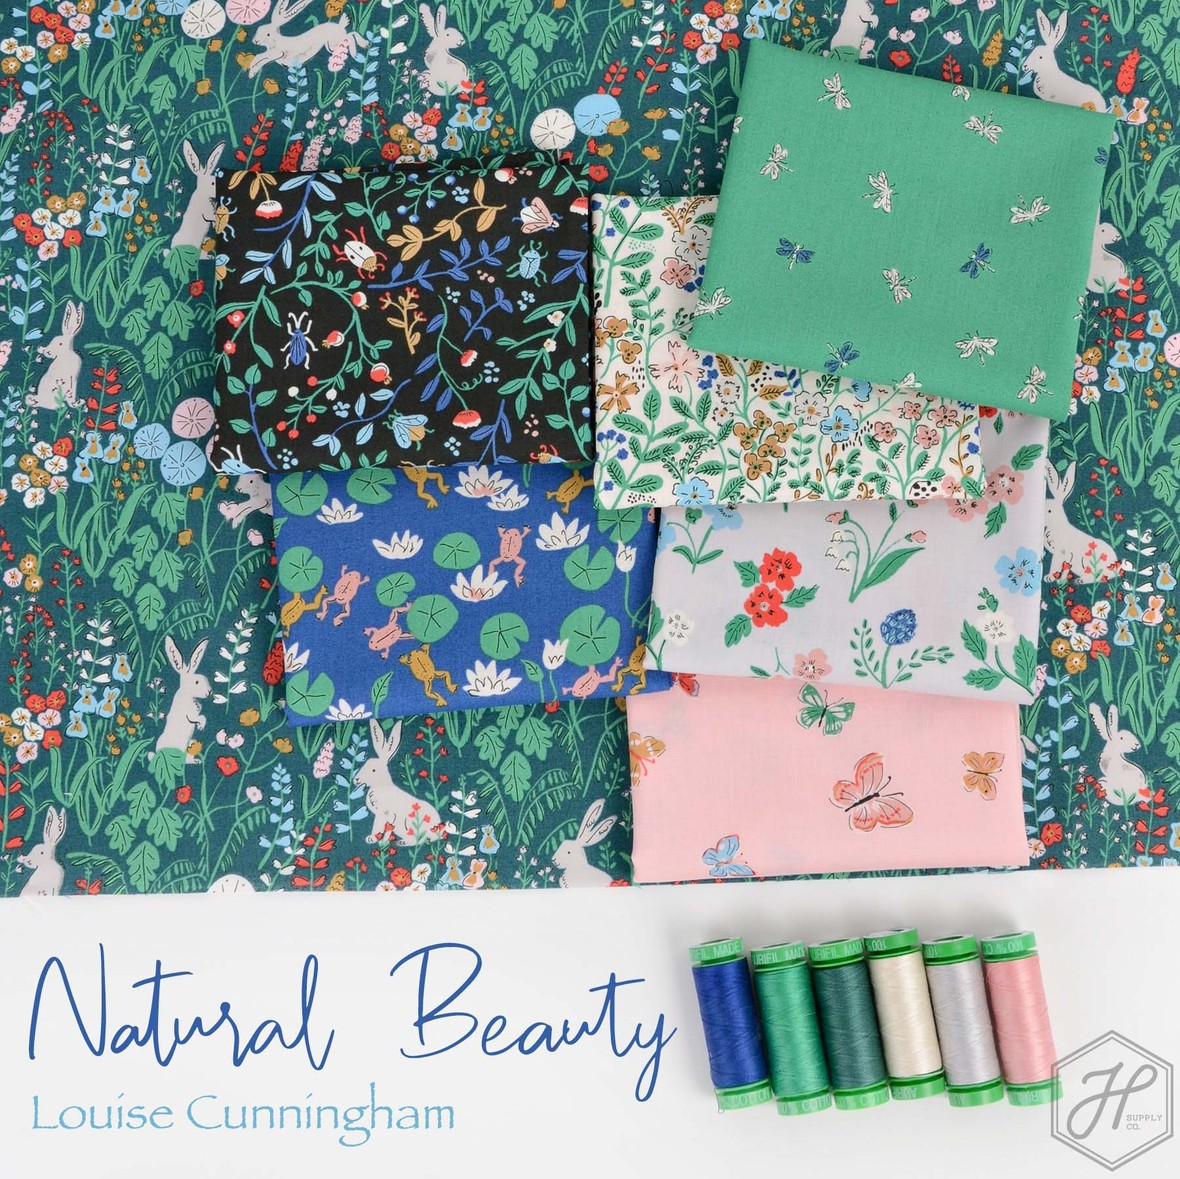 Natural Beauty Fabric Louise Cunningham from Cloud 9 at Hawthorne Supply Co